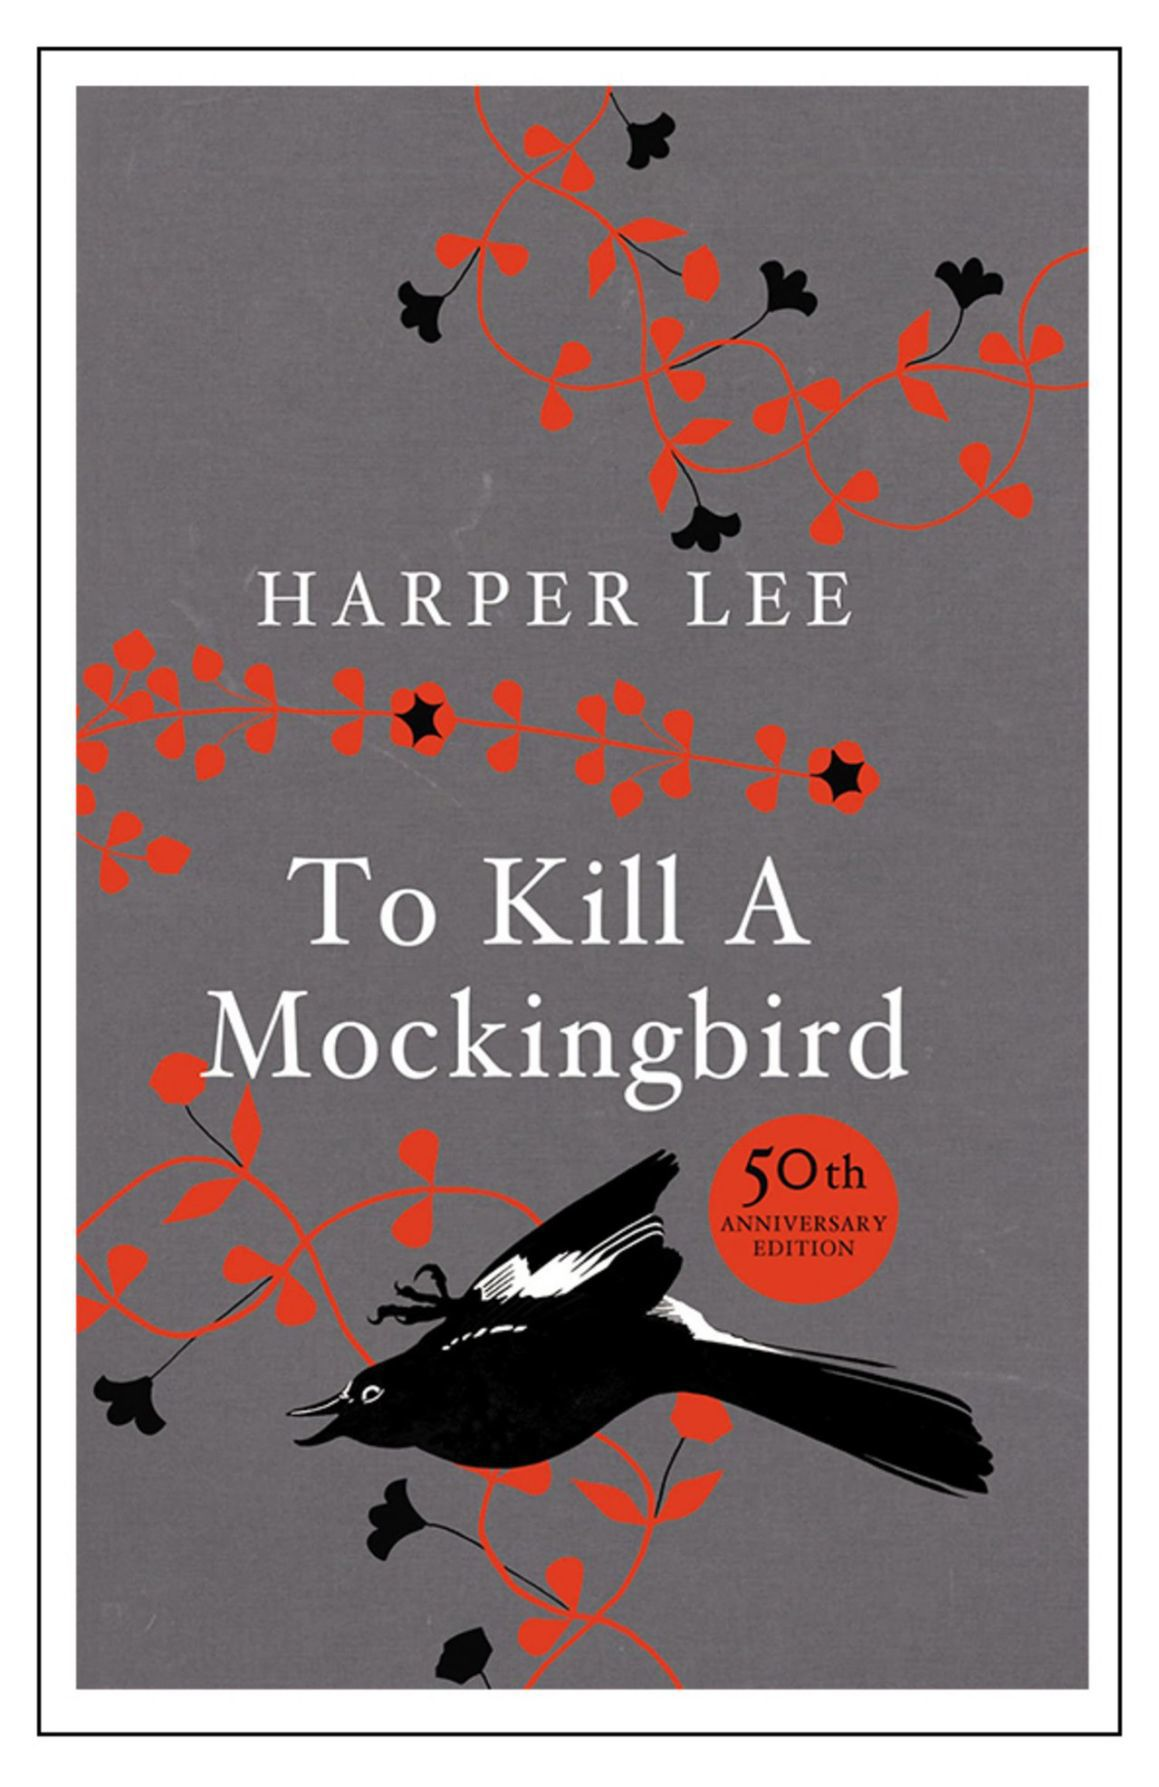 to kill a mockingbird controversial issues Analysis of to kill a mockingbird saryuna rinchino, gr 02193 the story under analysis is an extract from a novel to kill a mockingbird the book was written by harper lee in 1960 harper lee was born in 1926 in the state of alabama.